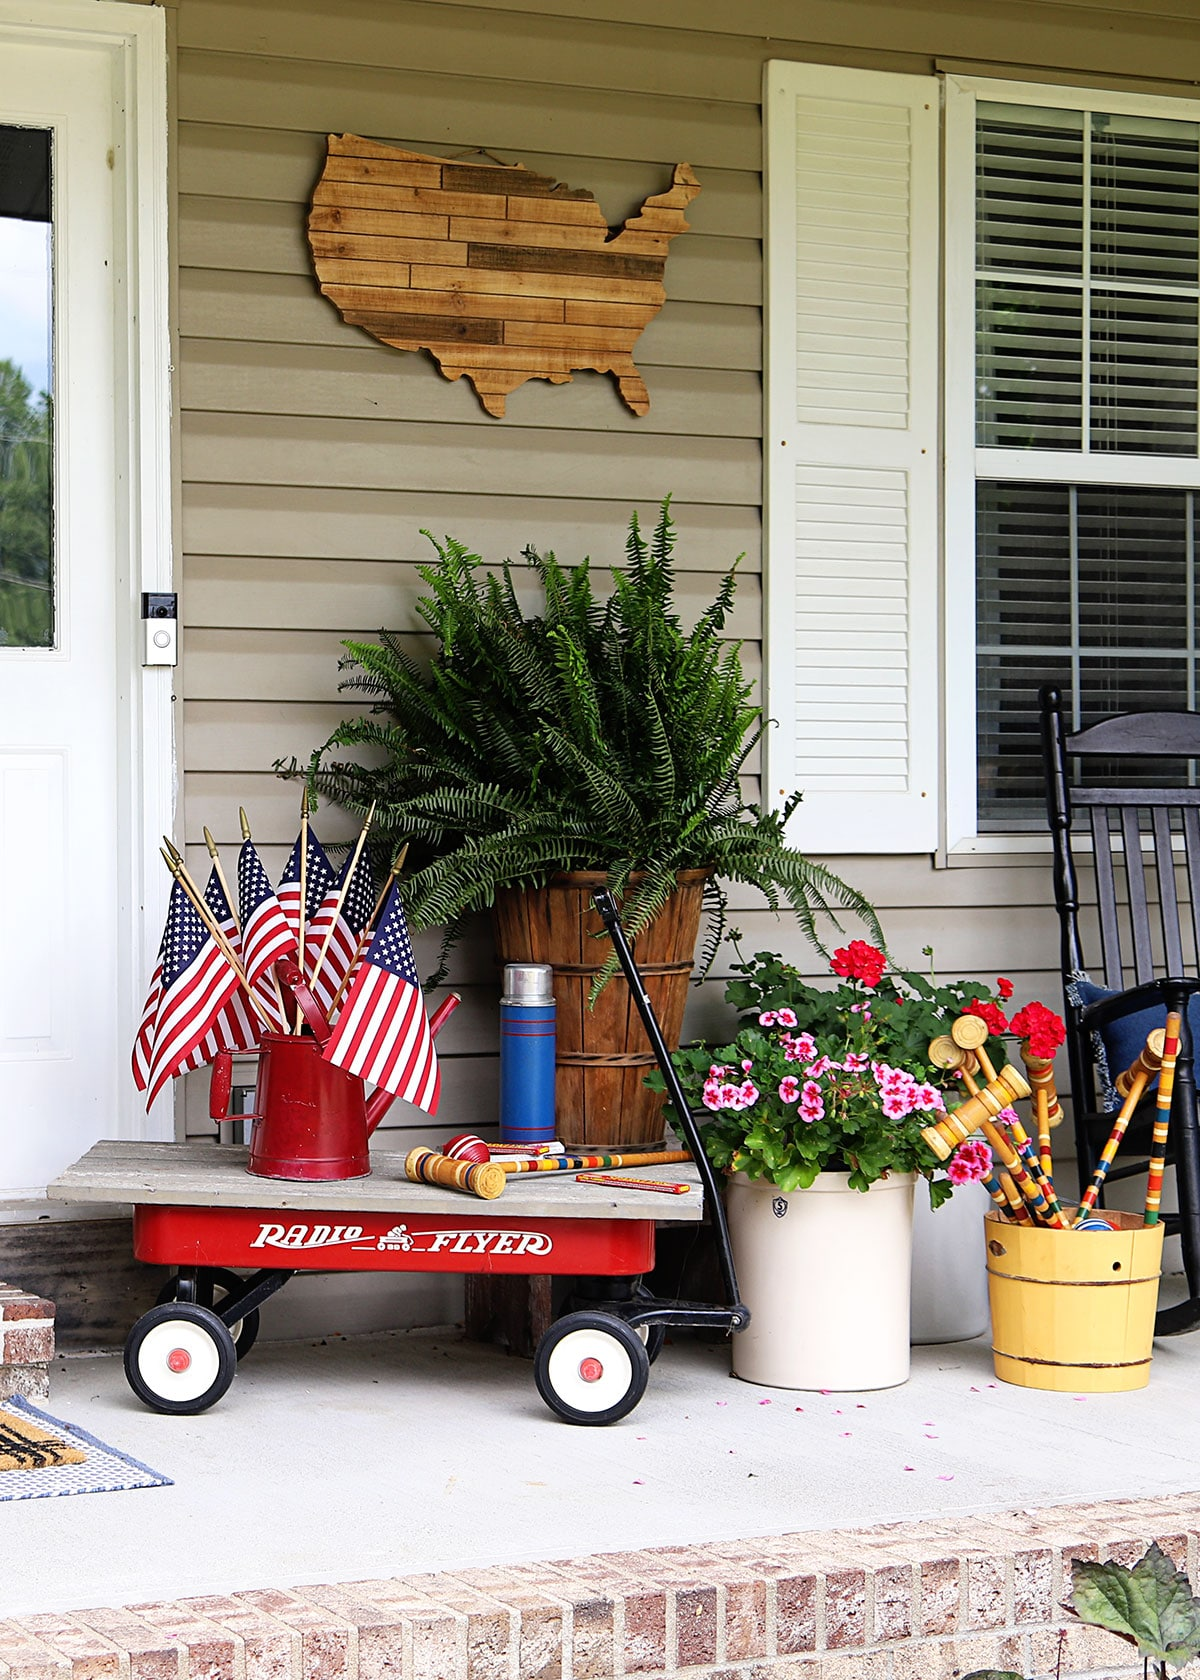 Patriotic porch decorations for a fun 4th of July.